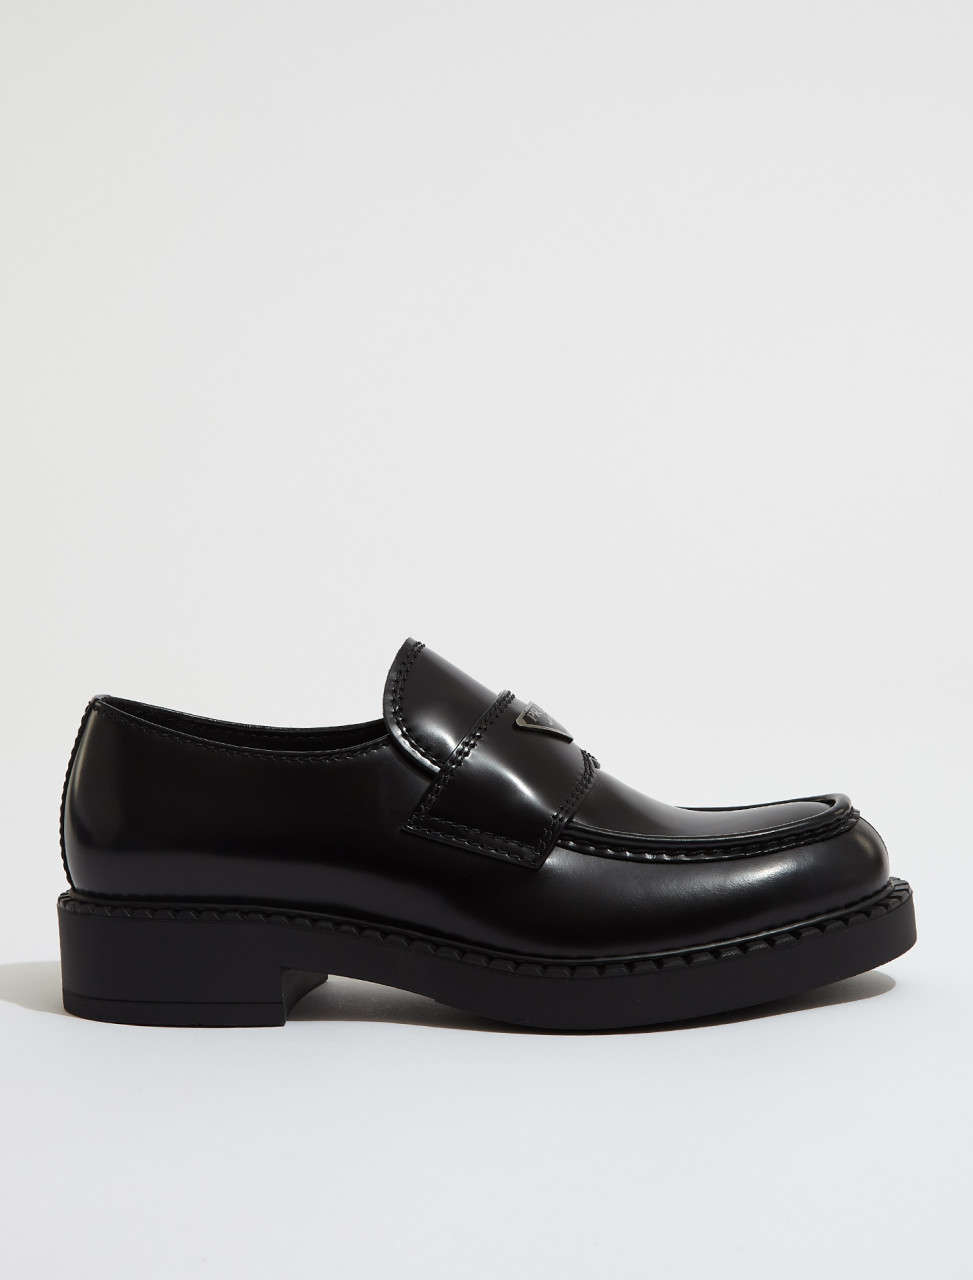 2DE127_055_F0002 PRADA Brushed Leather Loafers in Black